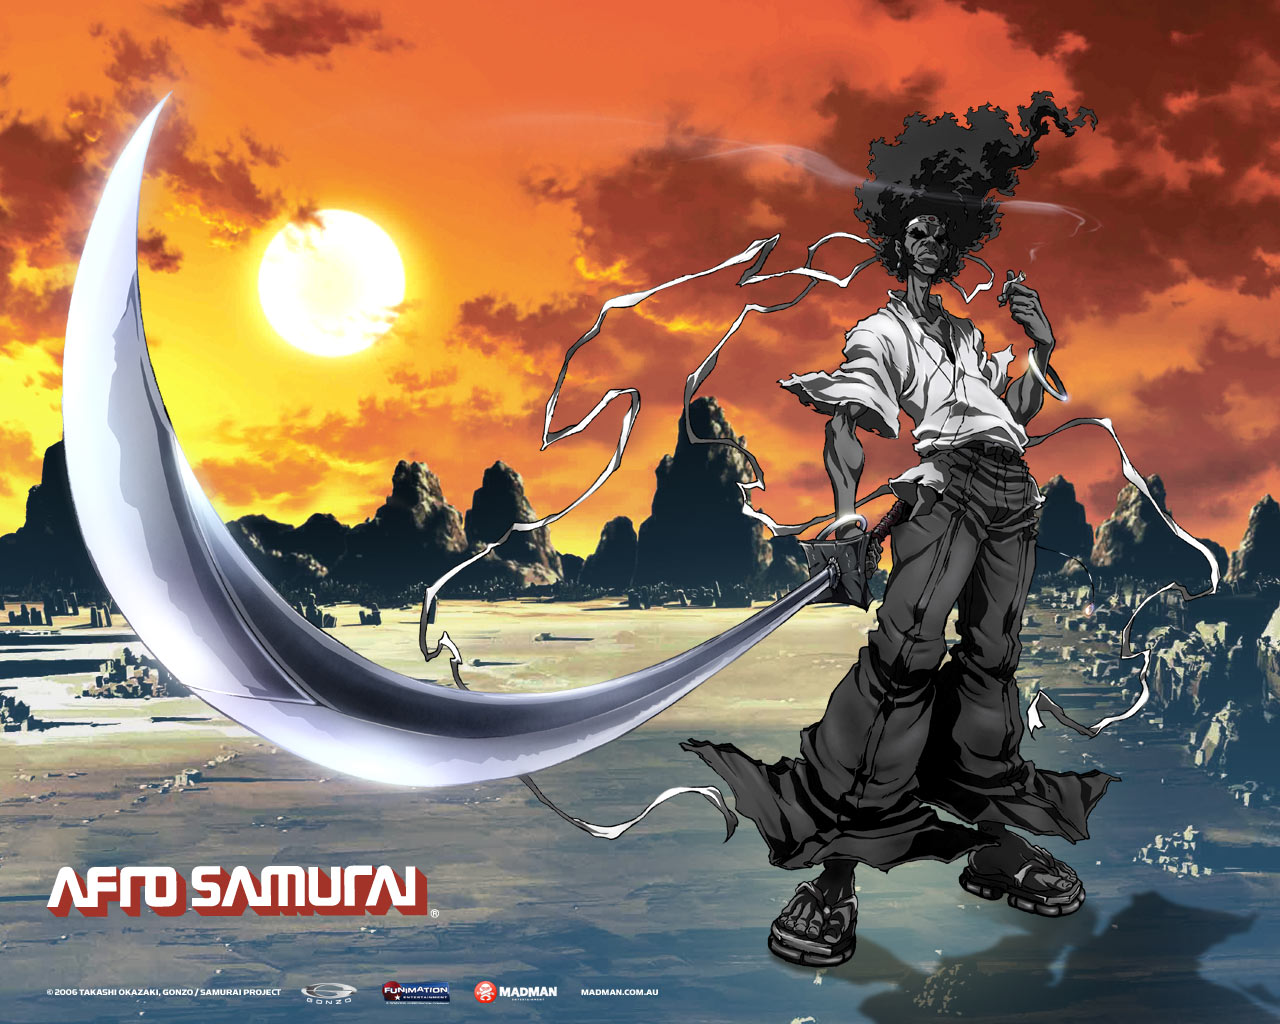 Afro Samurai Wallpapers. Game Wallpapers, PC Games Walkthrough